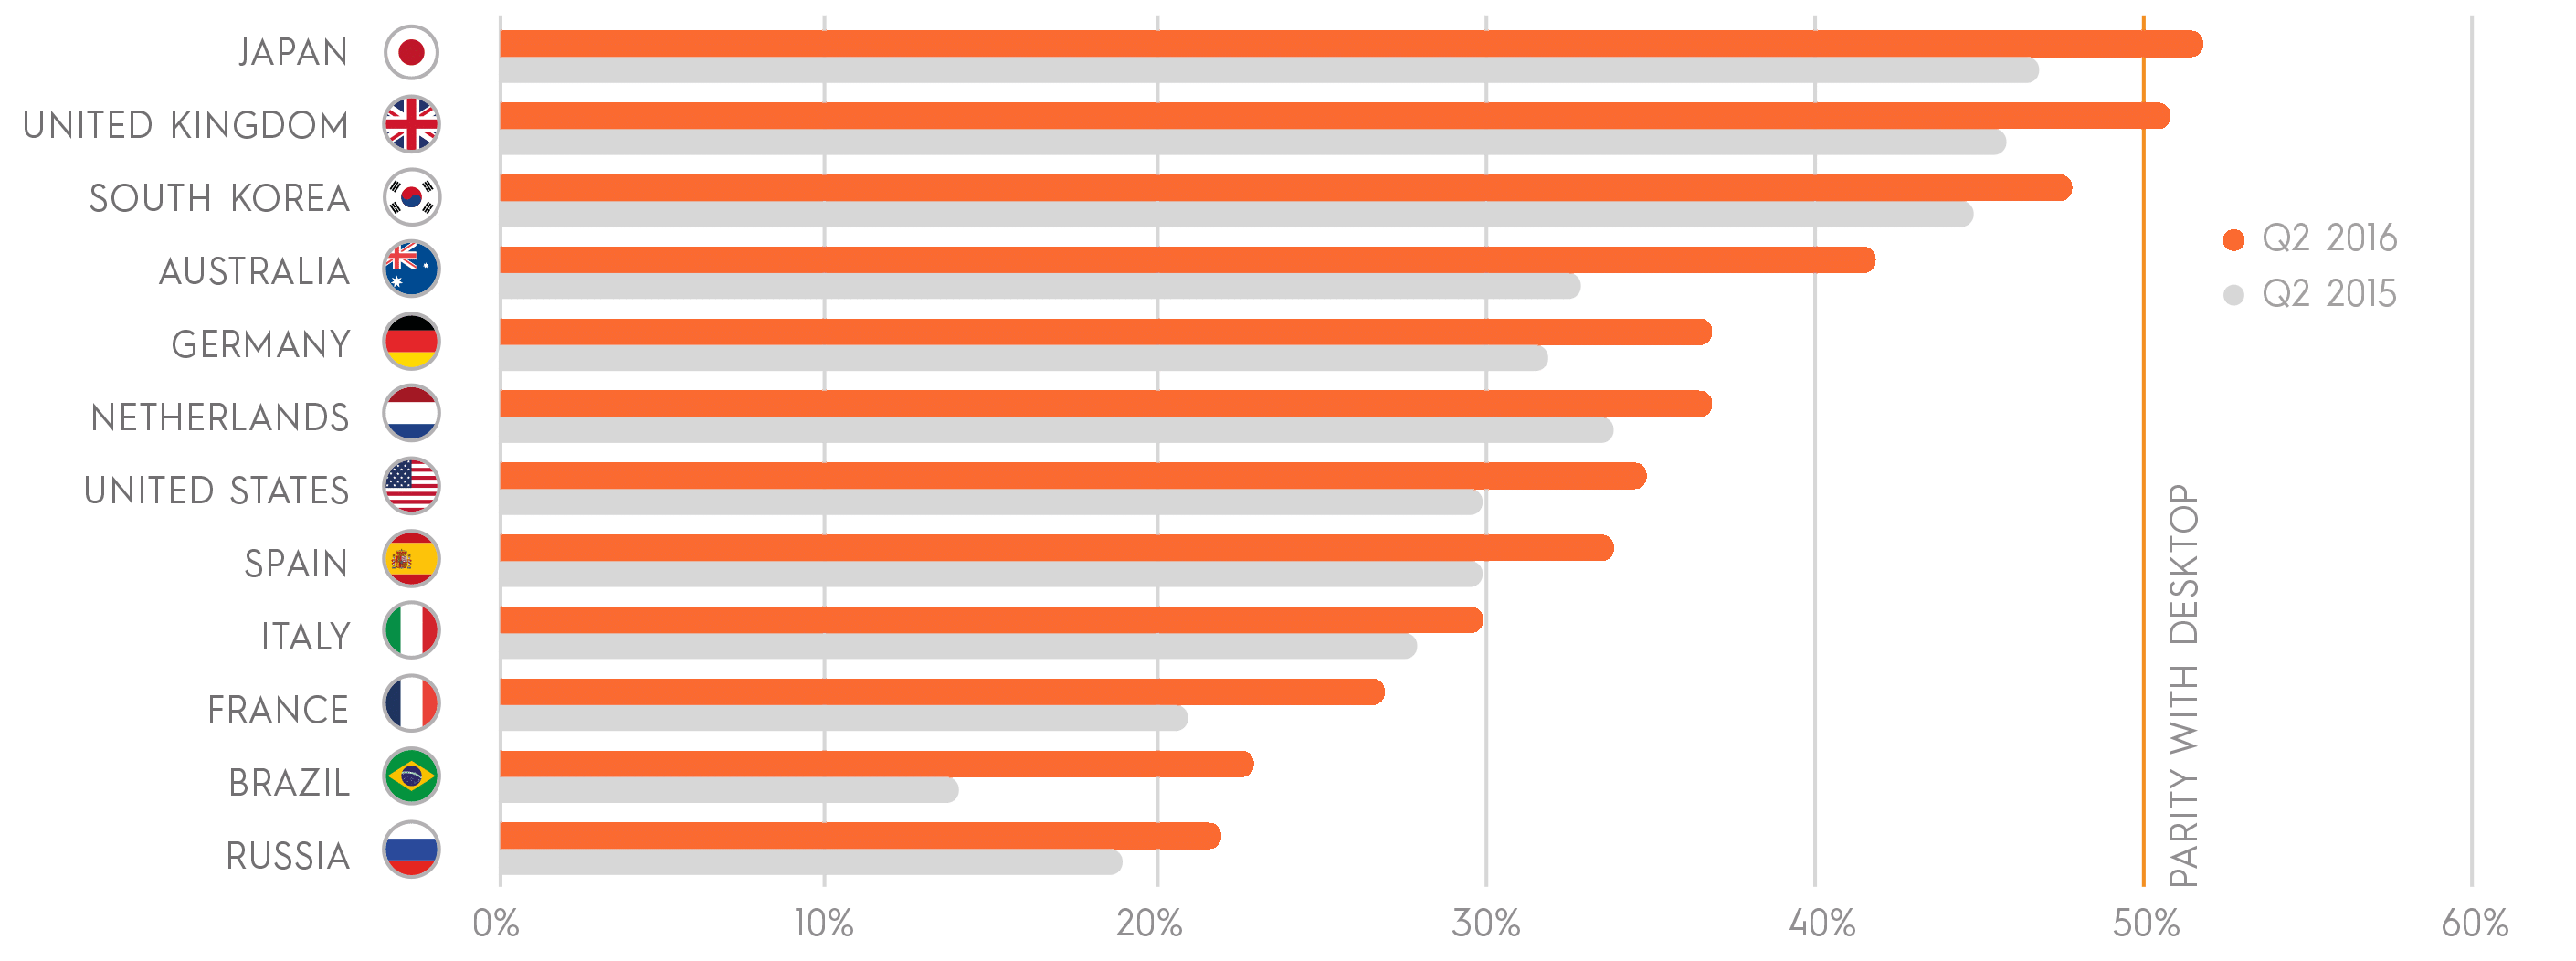 mobile-commerce-trends-2017-1